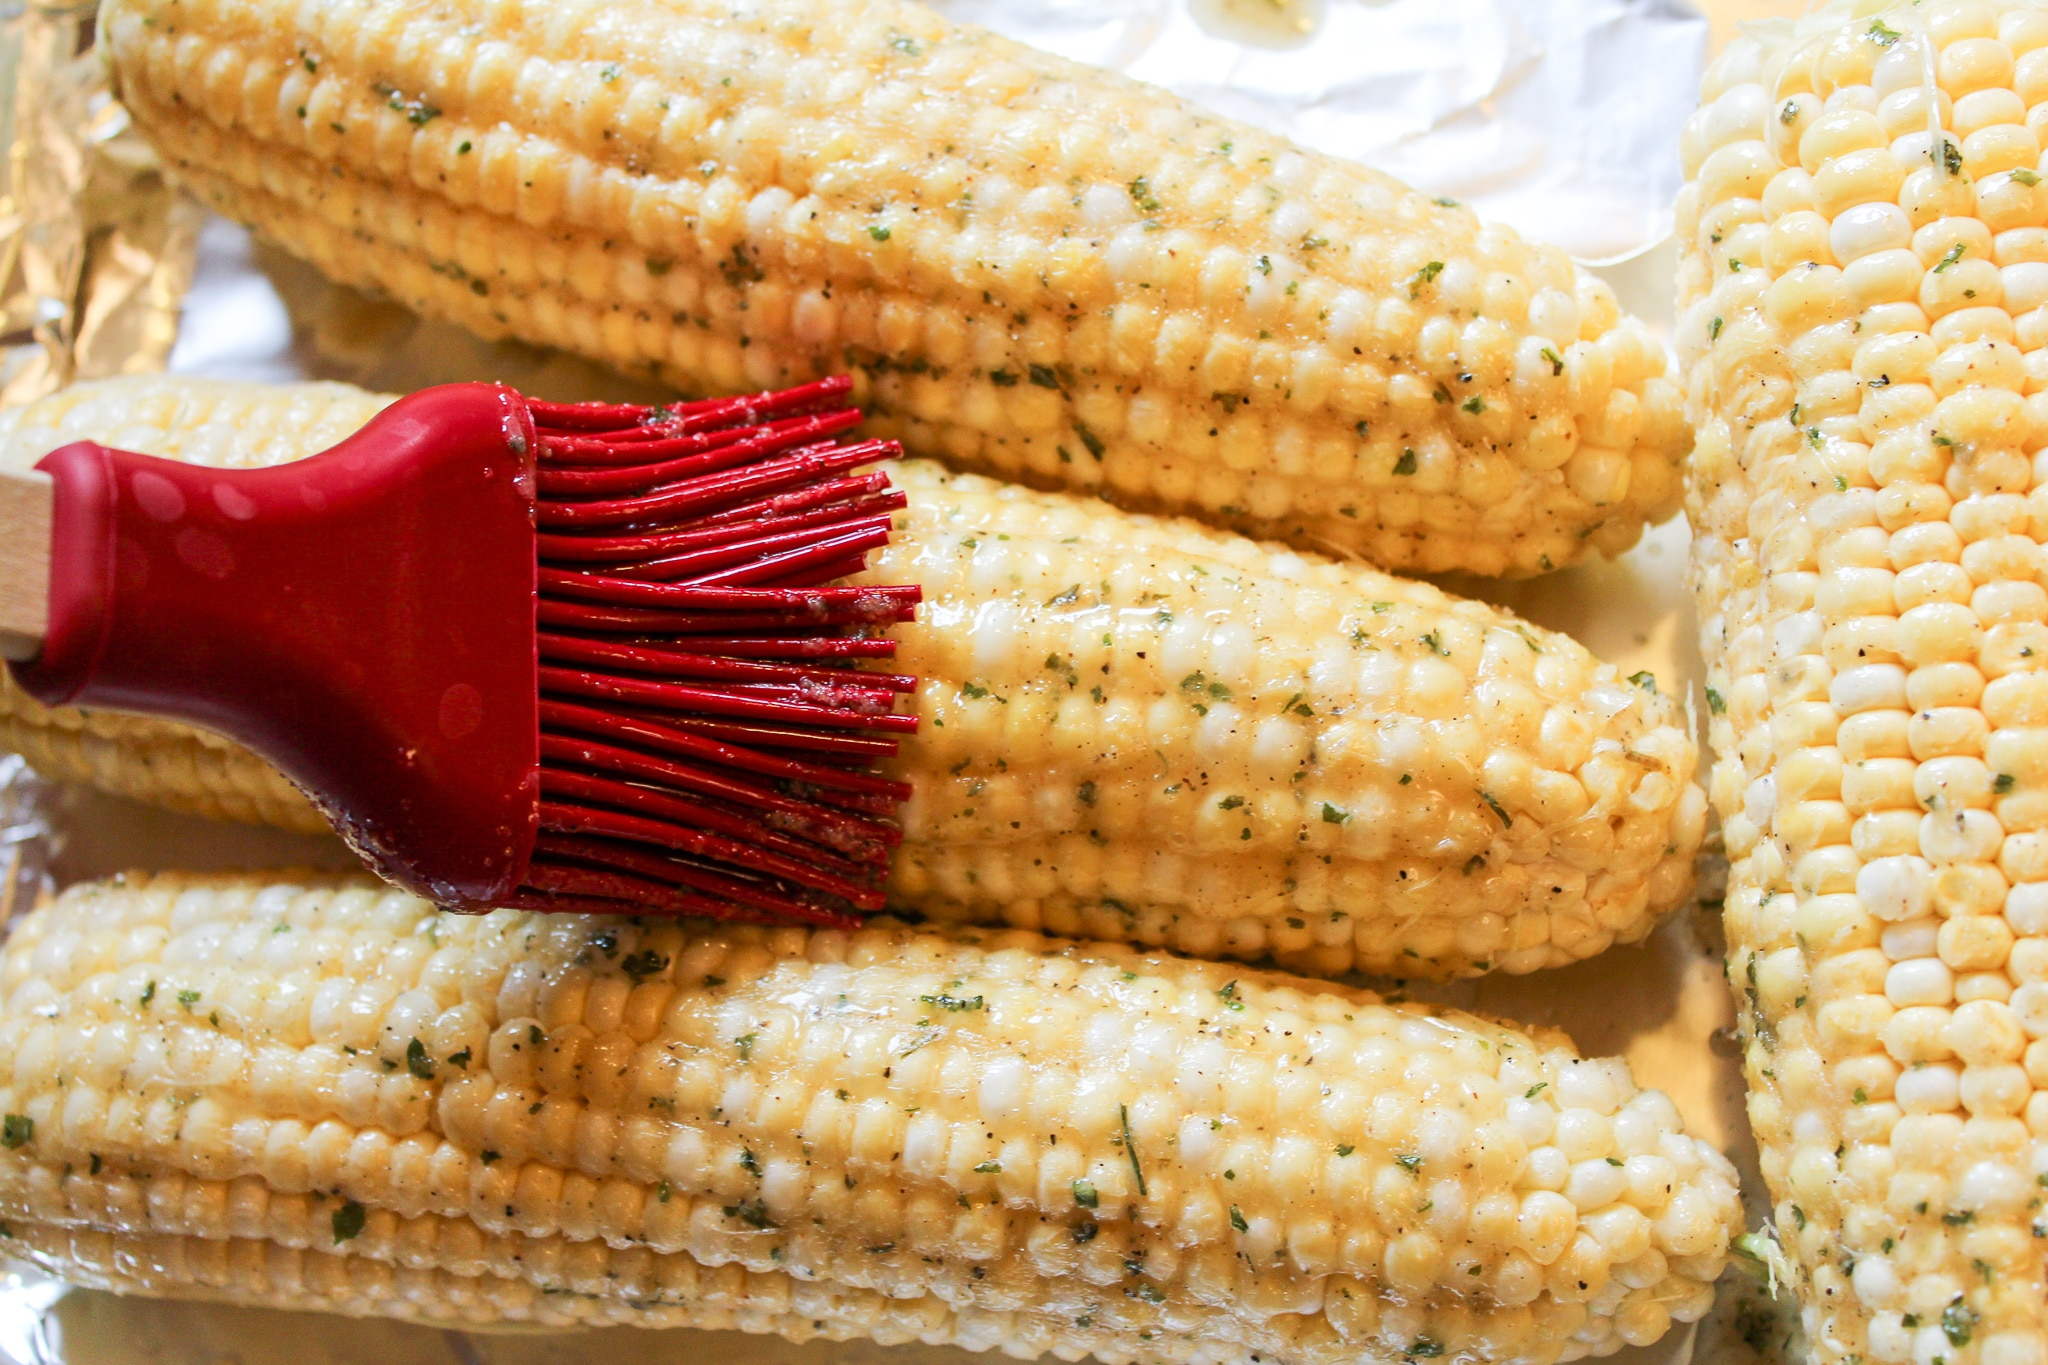 corn brushed with butter